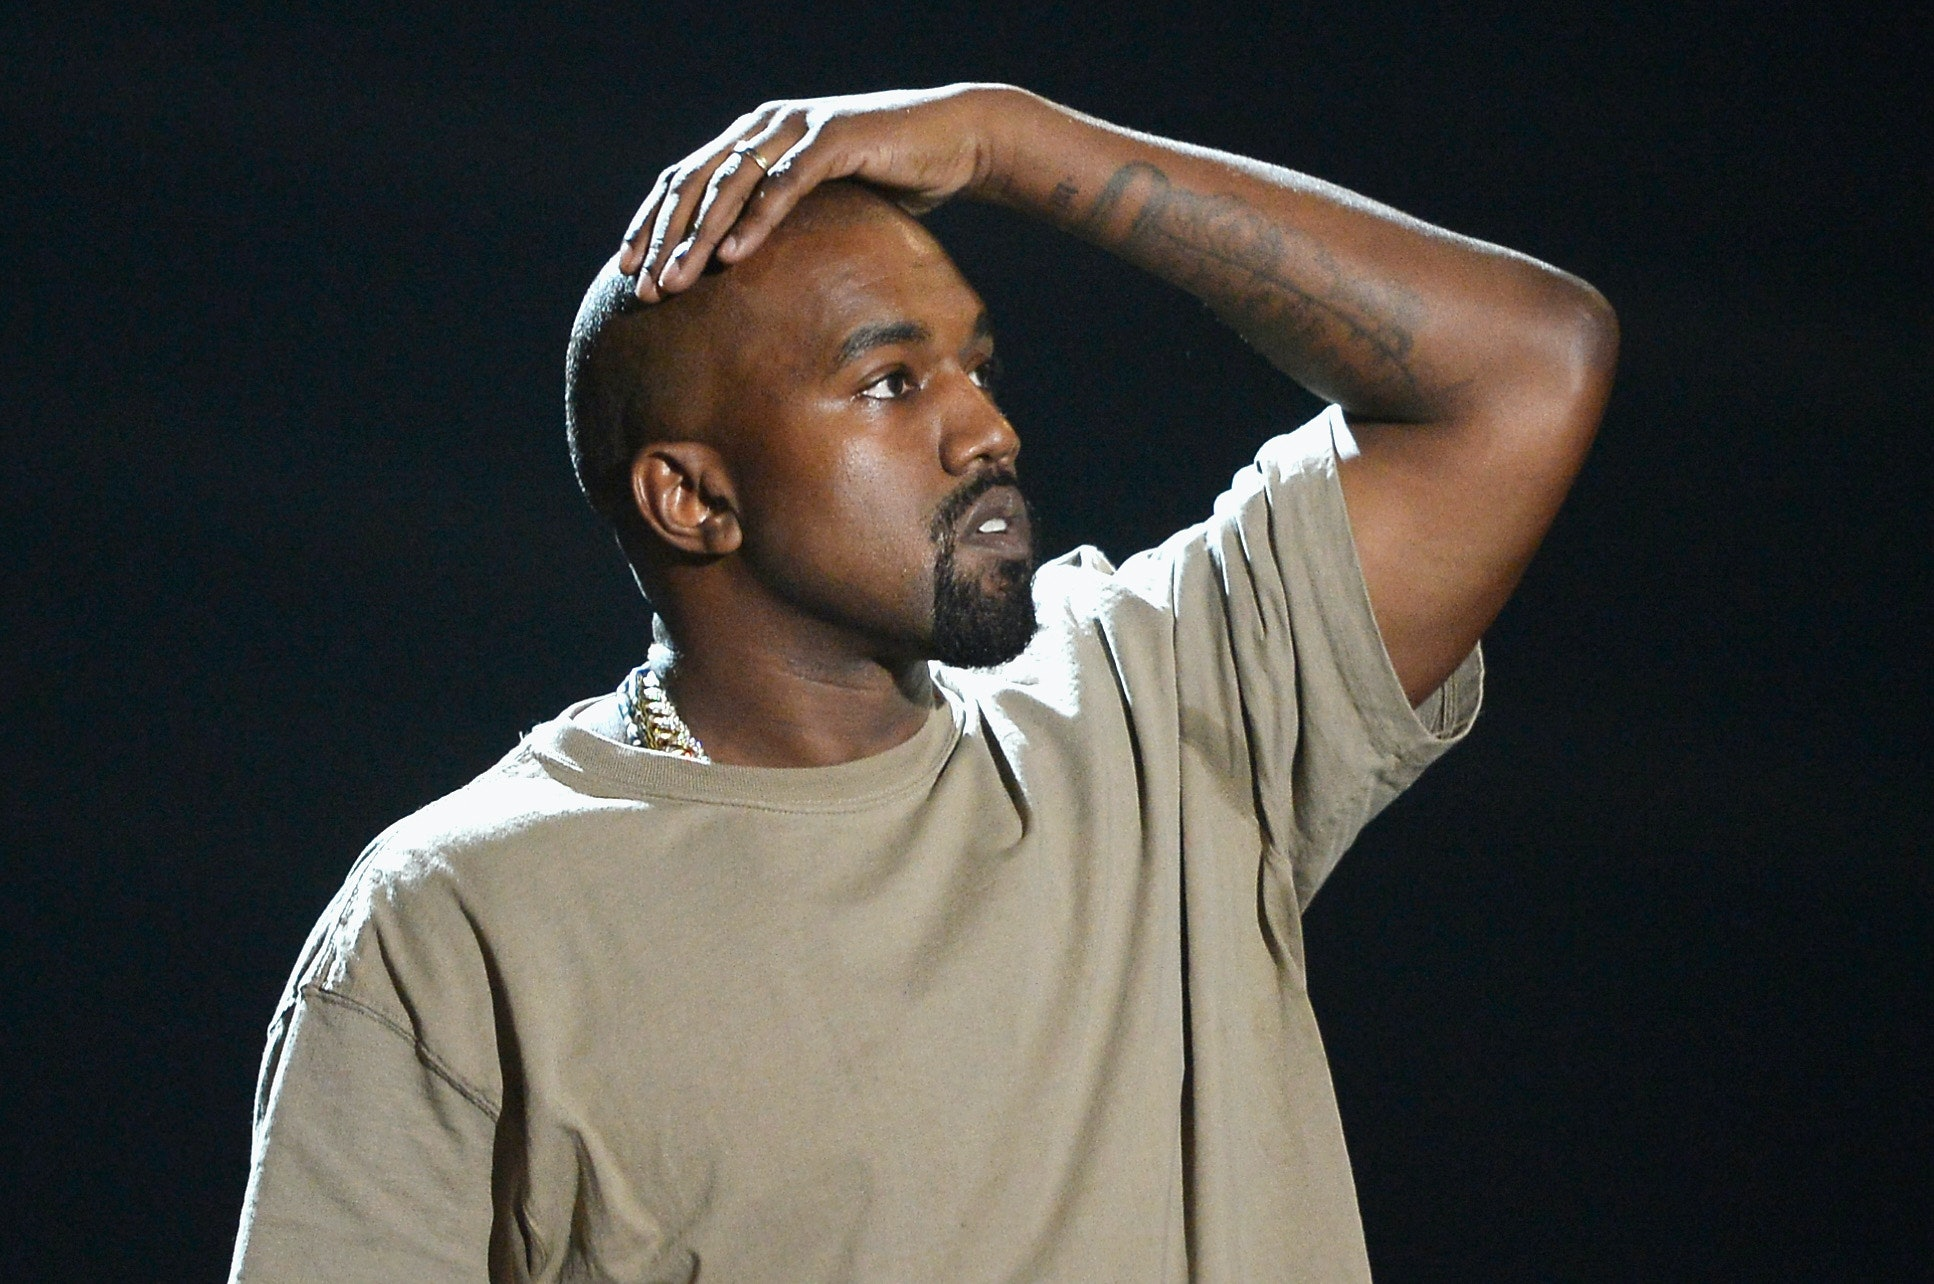 Kanye West angers fans by saying he 'would have voted for Trump'